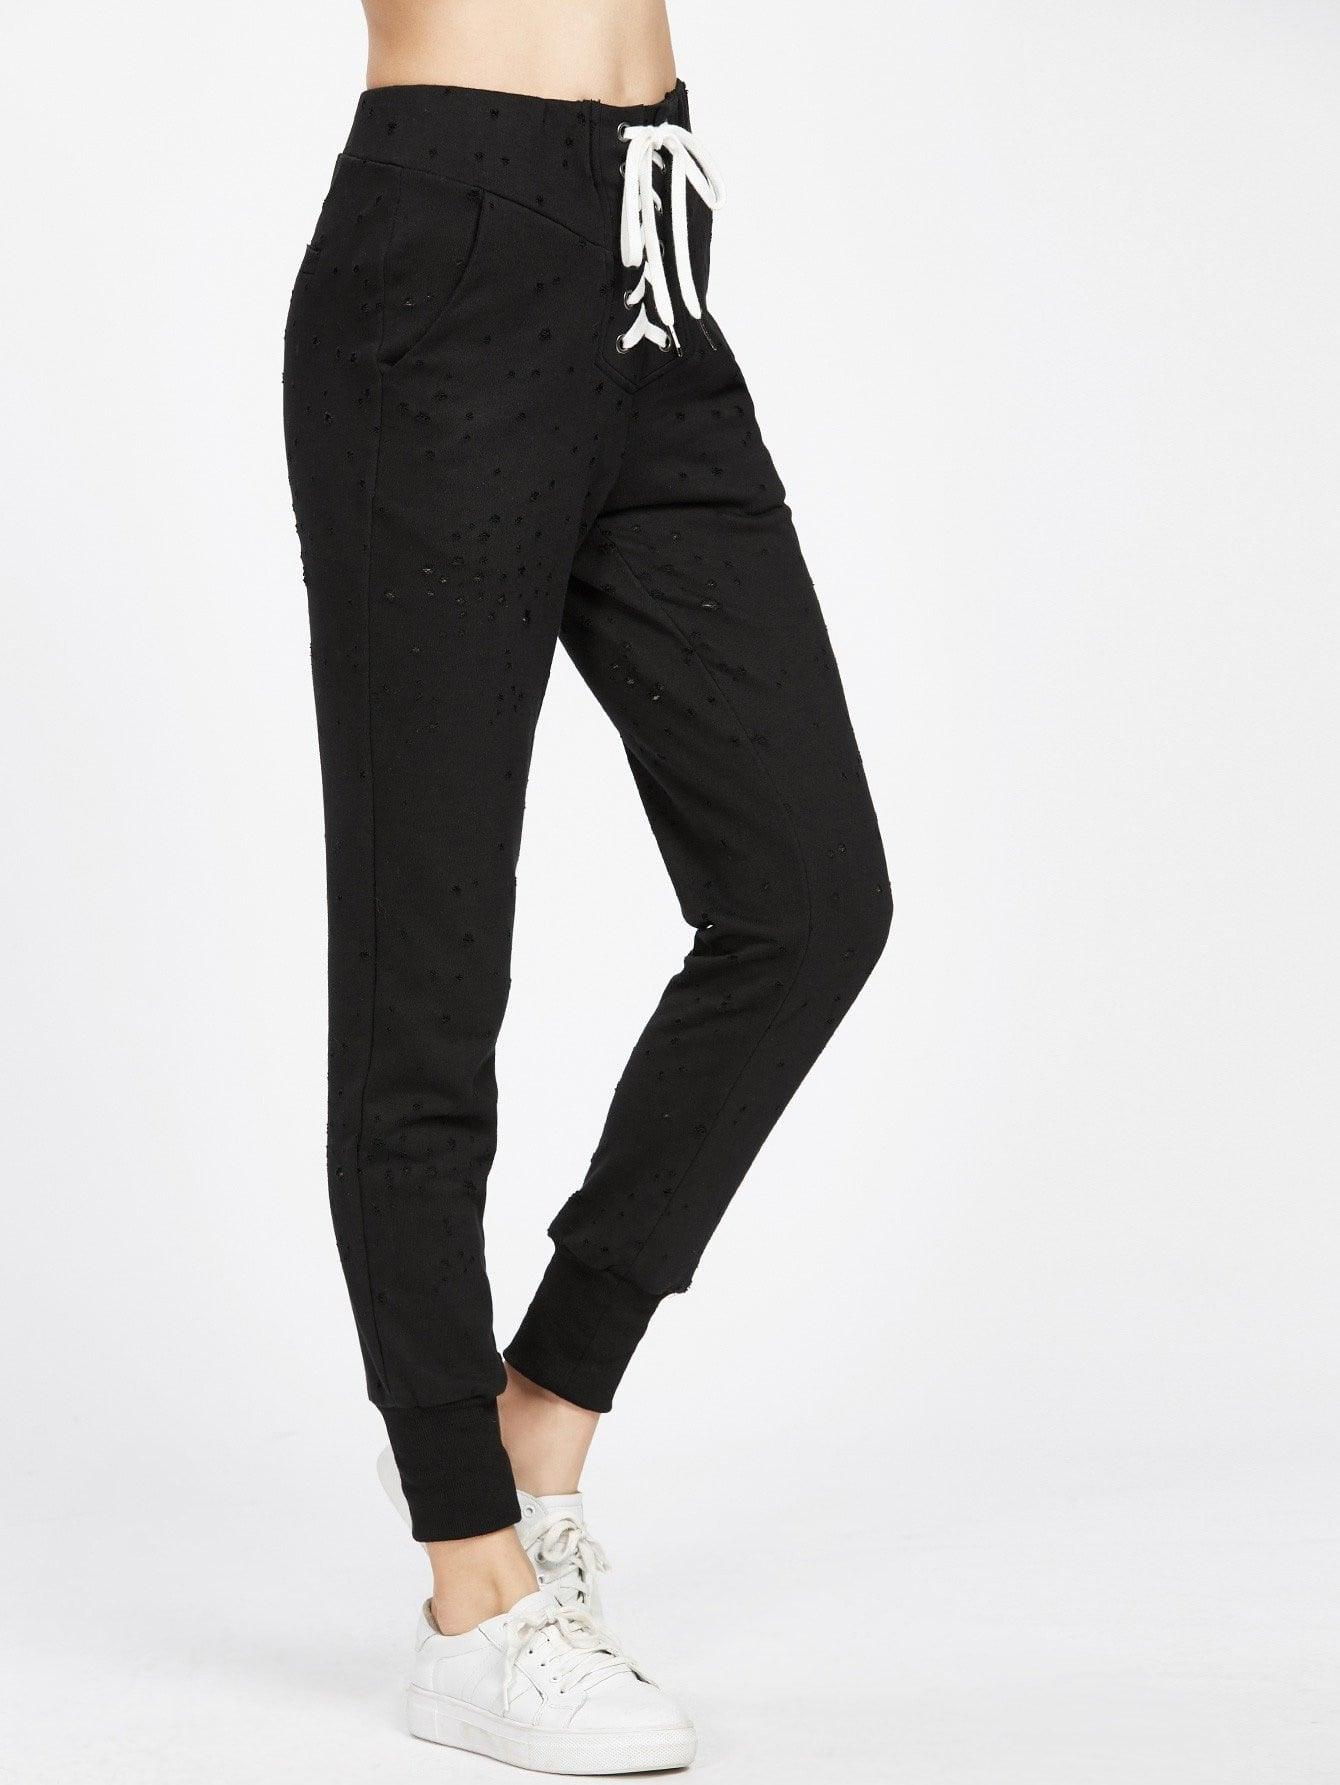 Lace Up Front Distressed Sweatpants - Pants - Zooomberg - Zoomberg